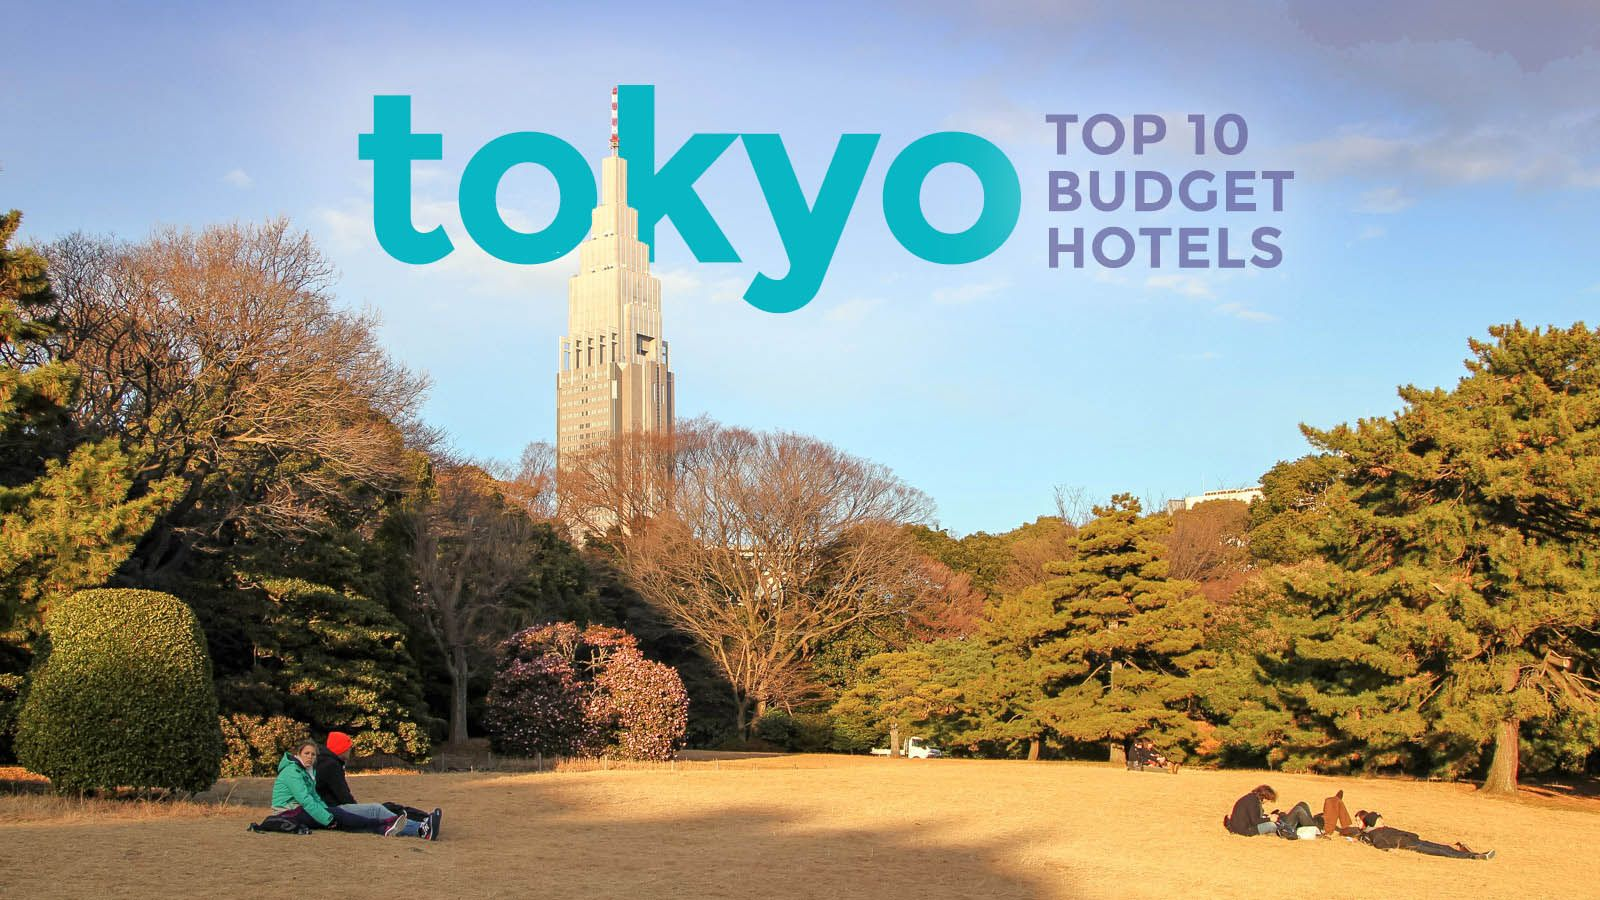 Tokyo Top 10 Budget Hotels Under 70 With Images Budget Hotel